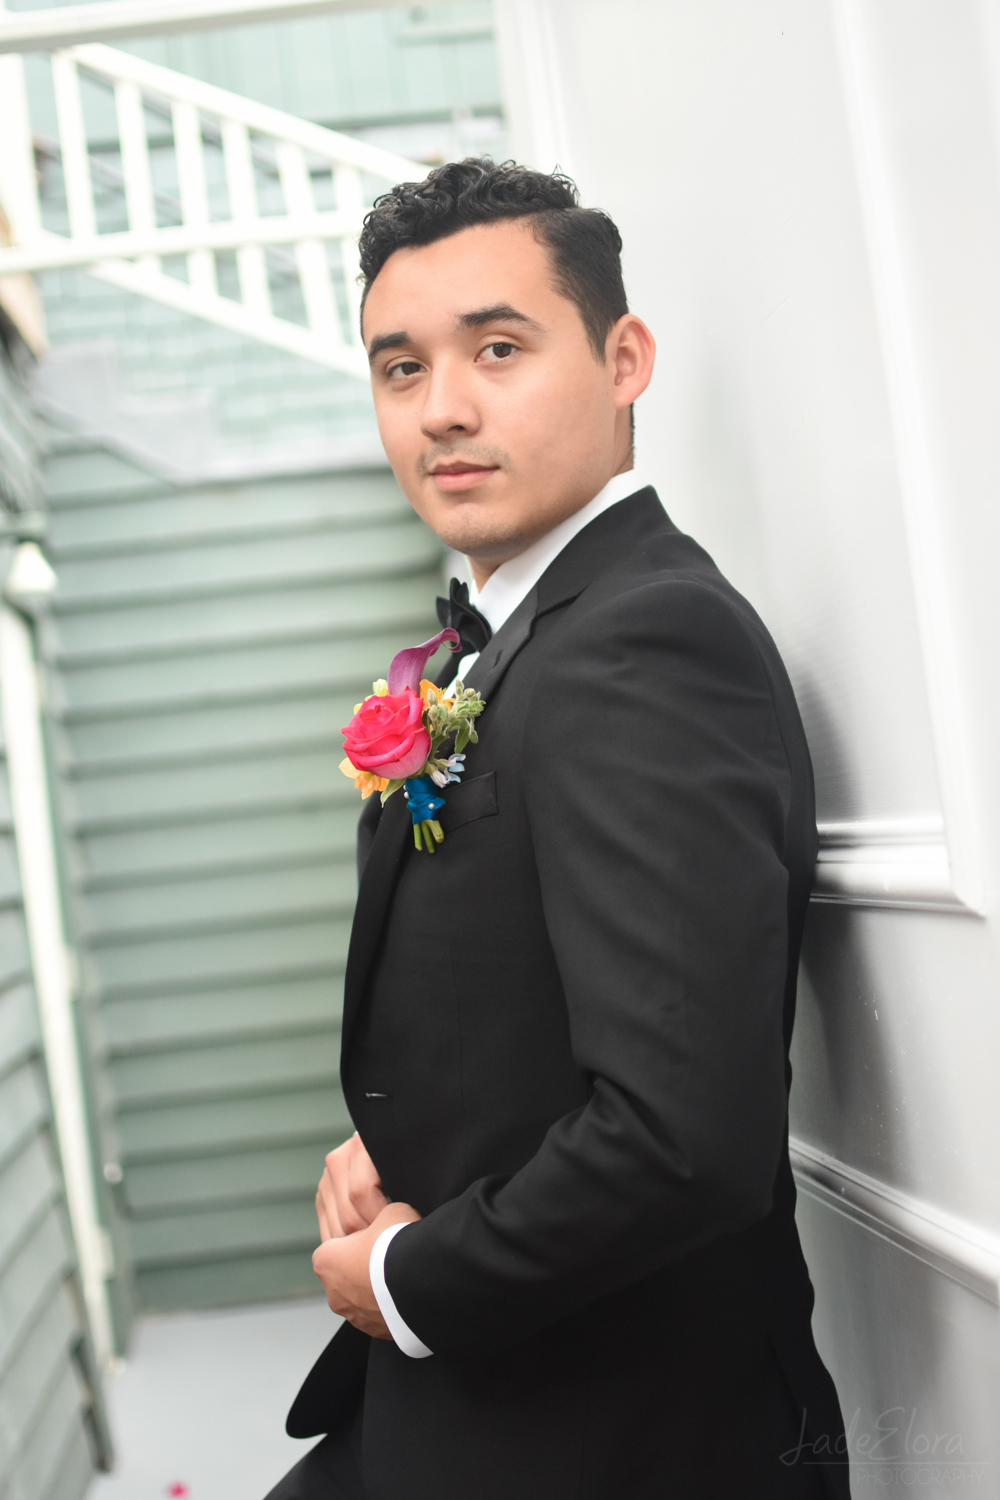 Groom with Pink Boutonniere at The Victorian Santa Monica